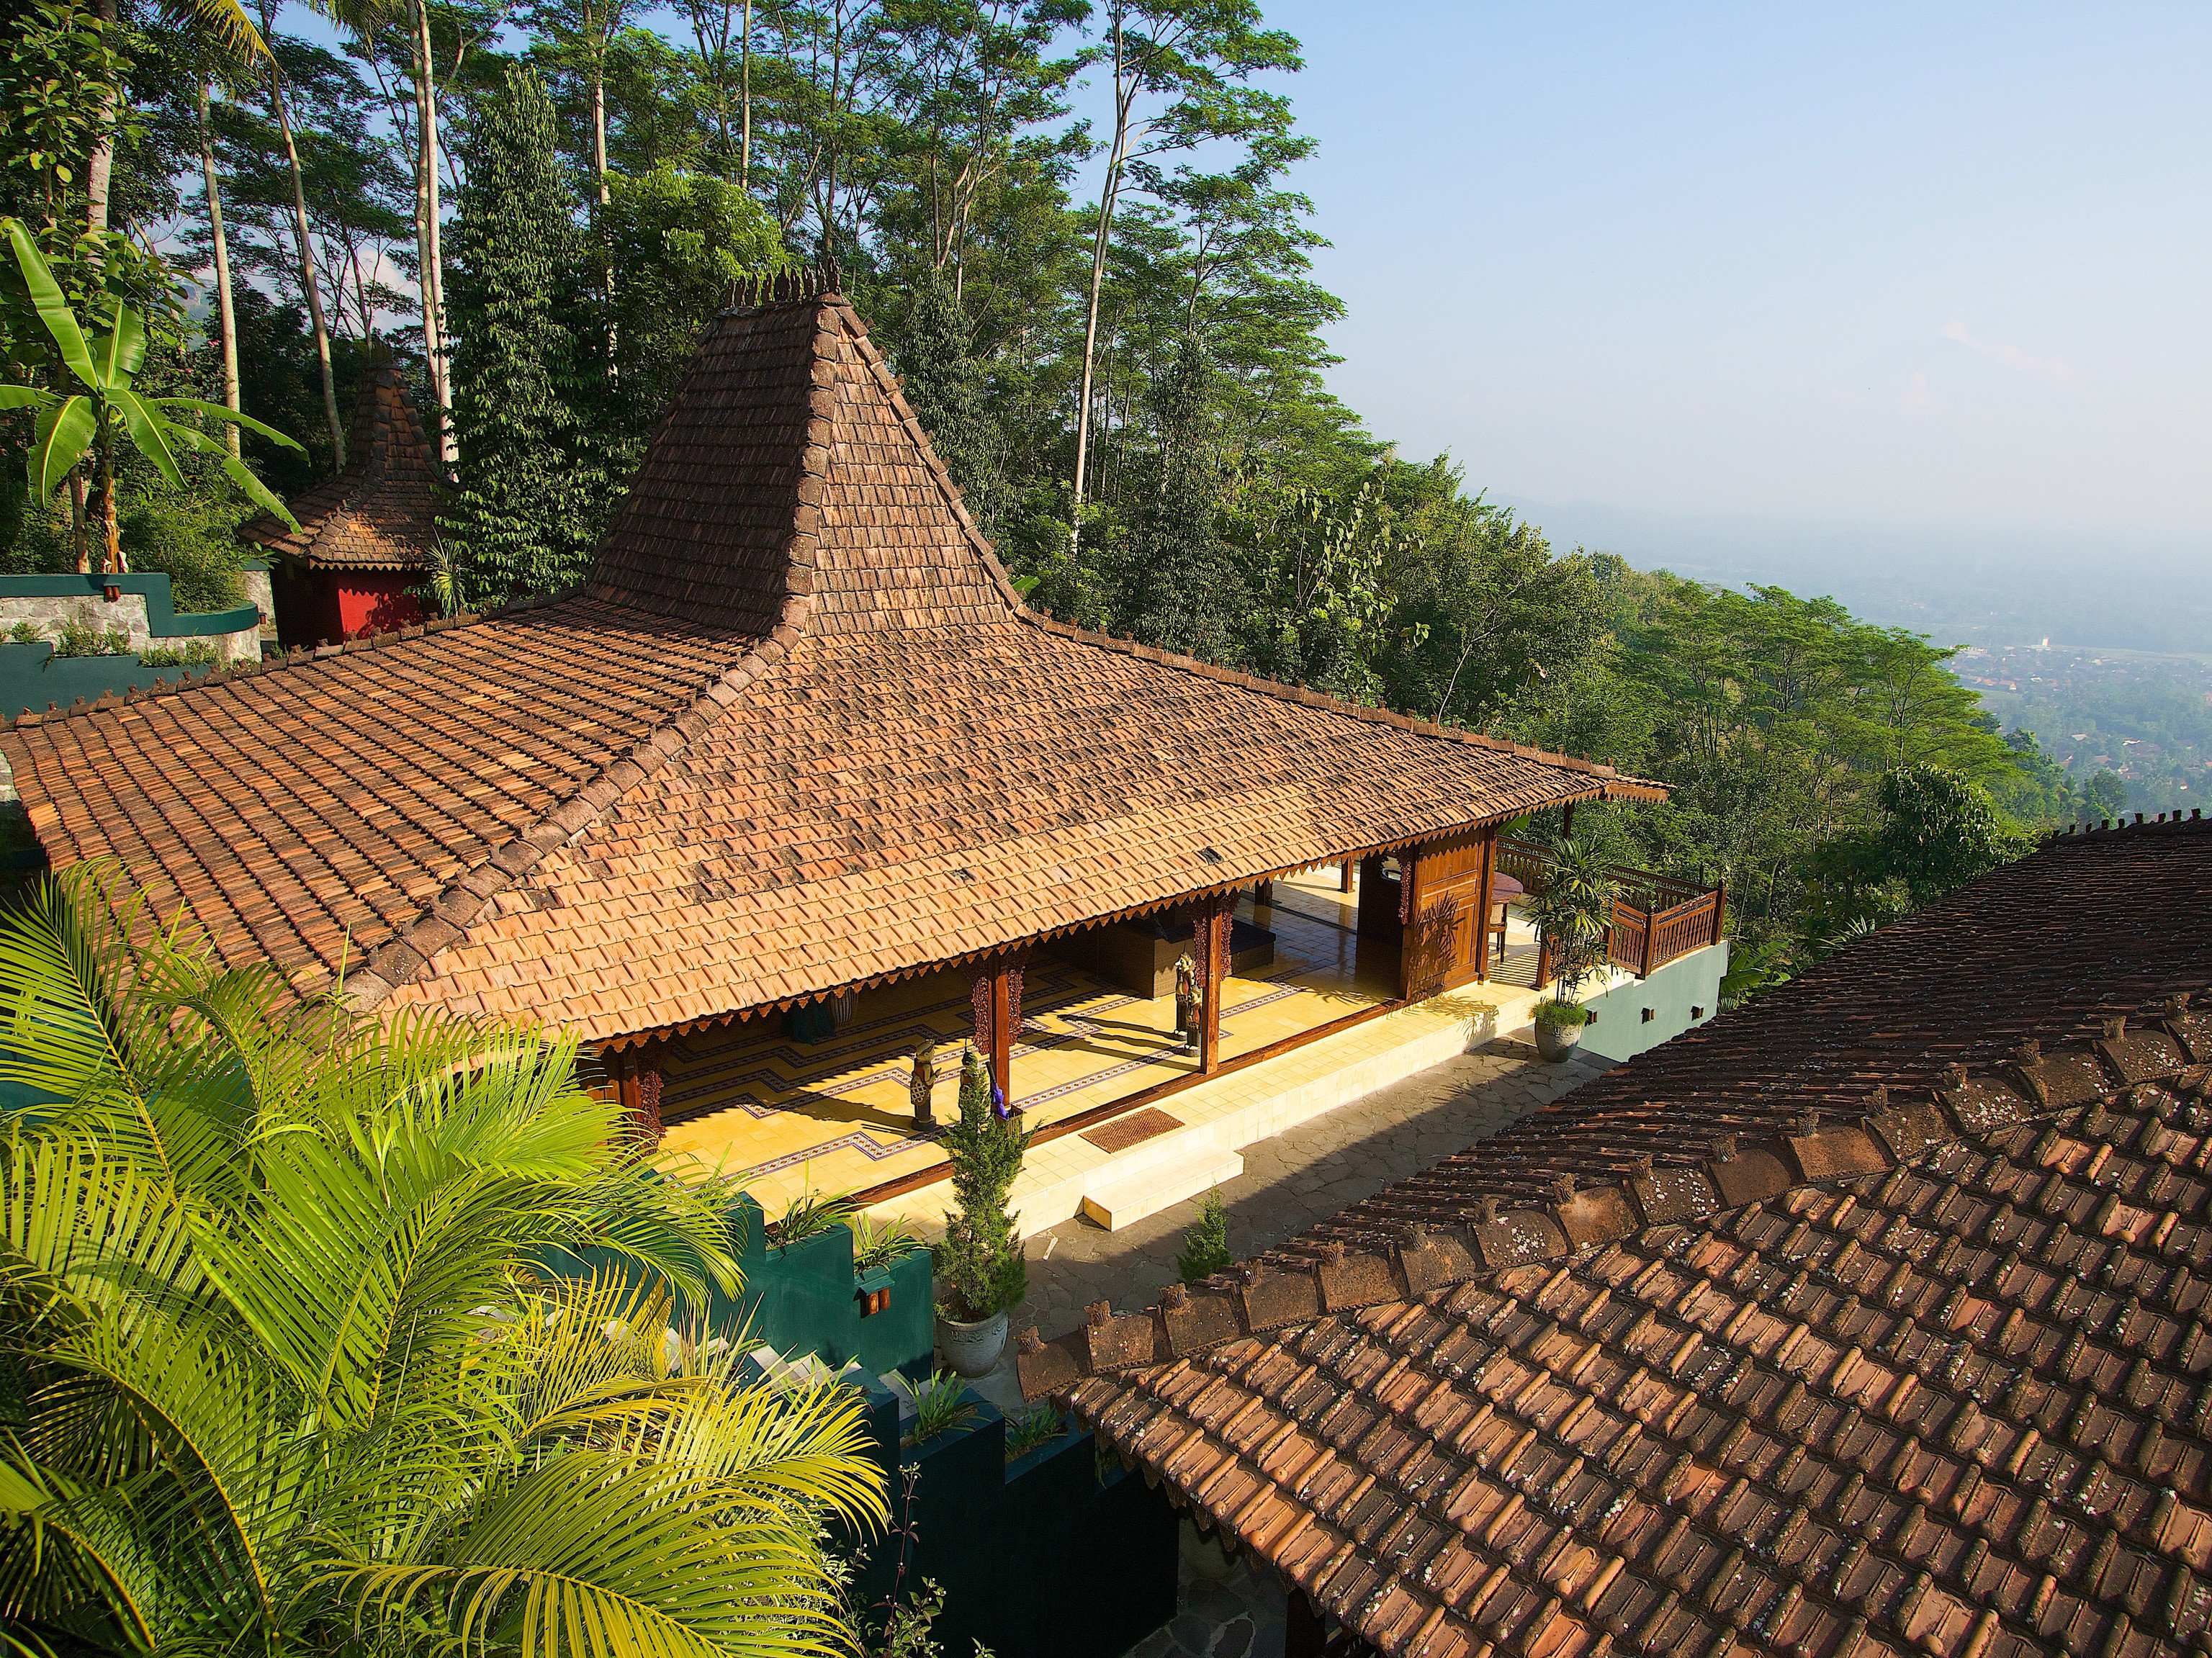 tree building thatching Resort roof hut outdoor structure cottage Villa